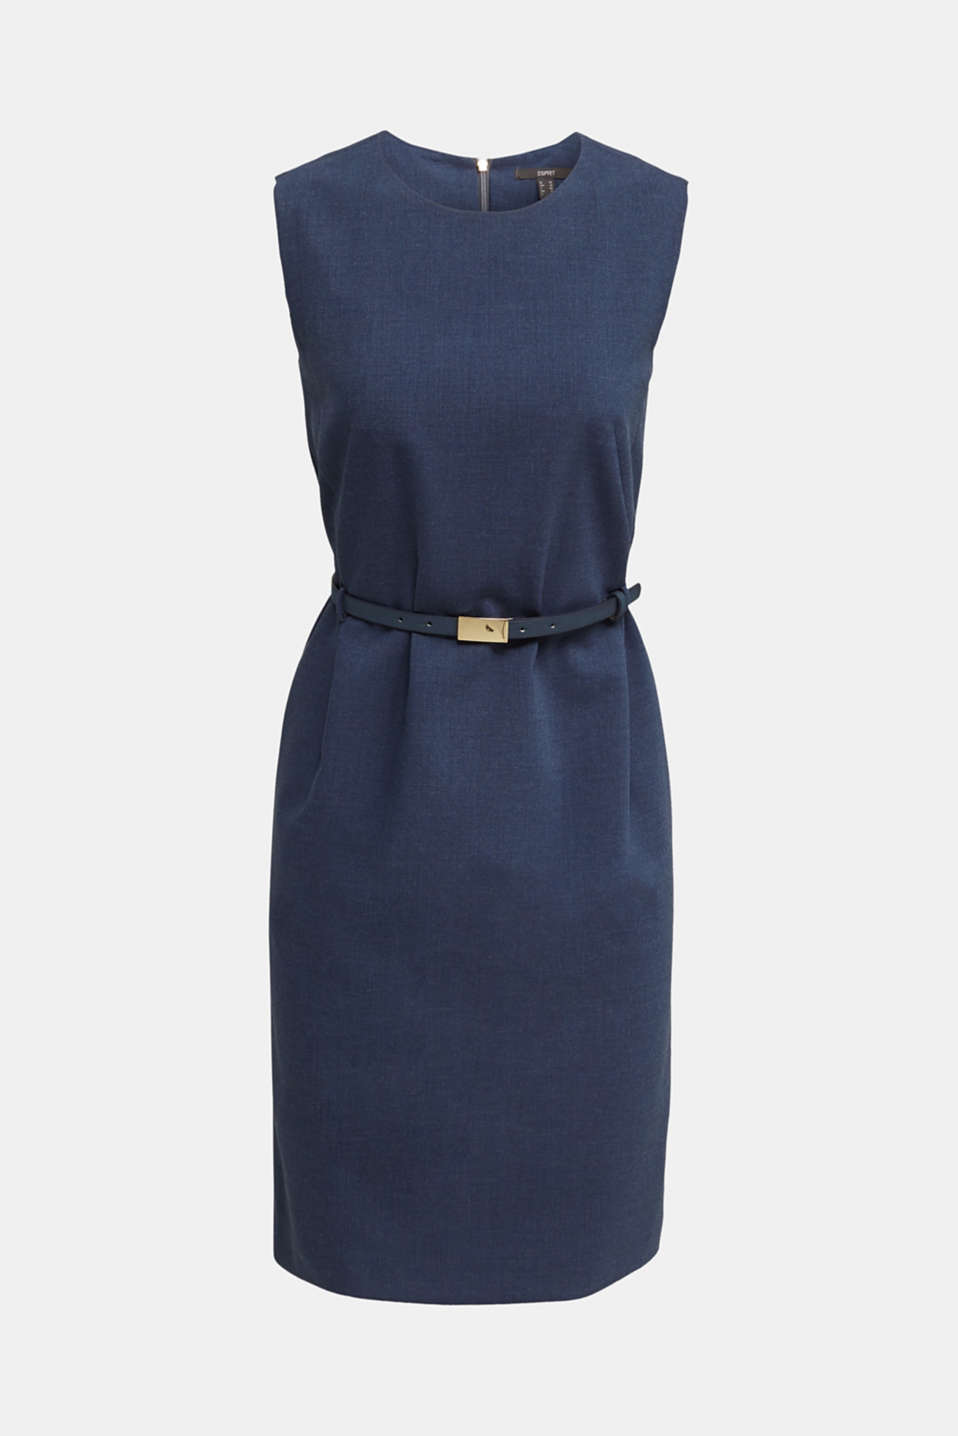 Sheath dress with a buckled belt, GREY BLUE 5, detail image number 7